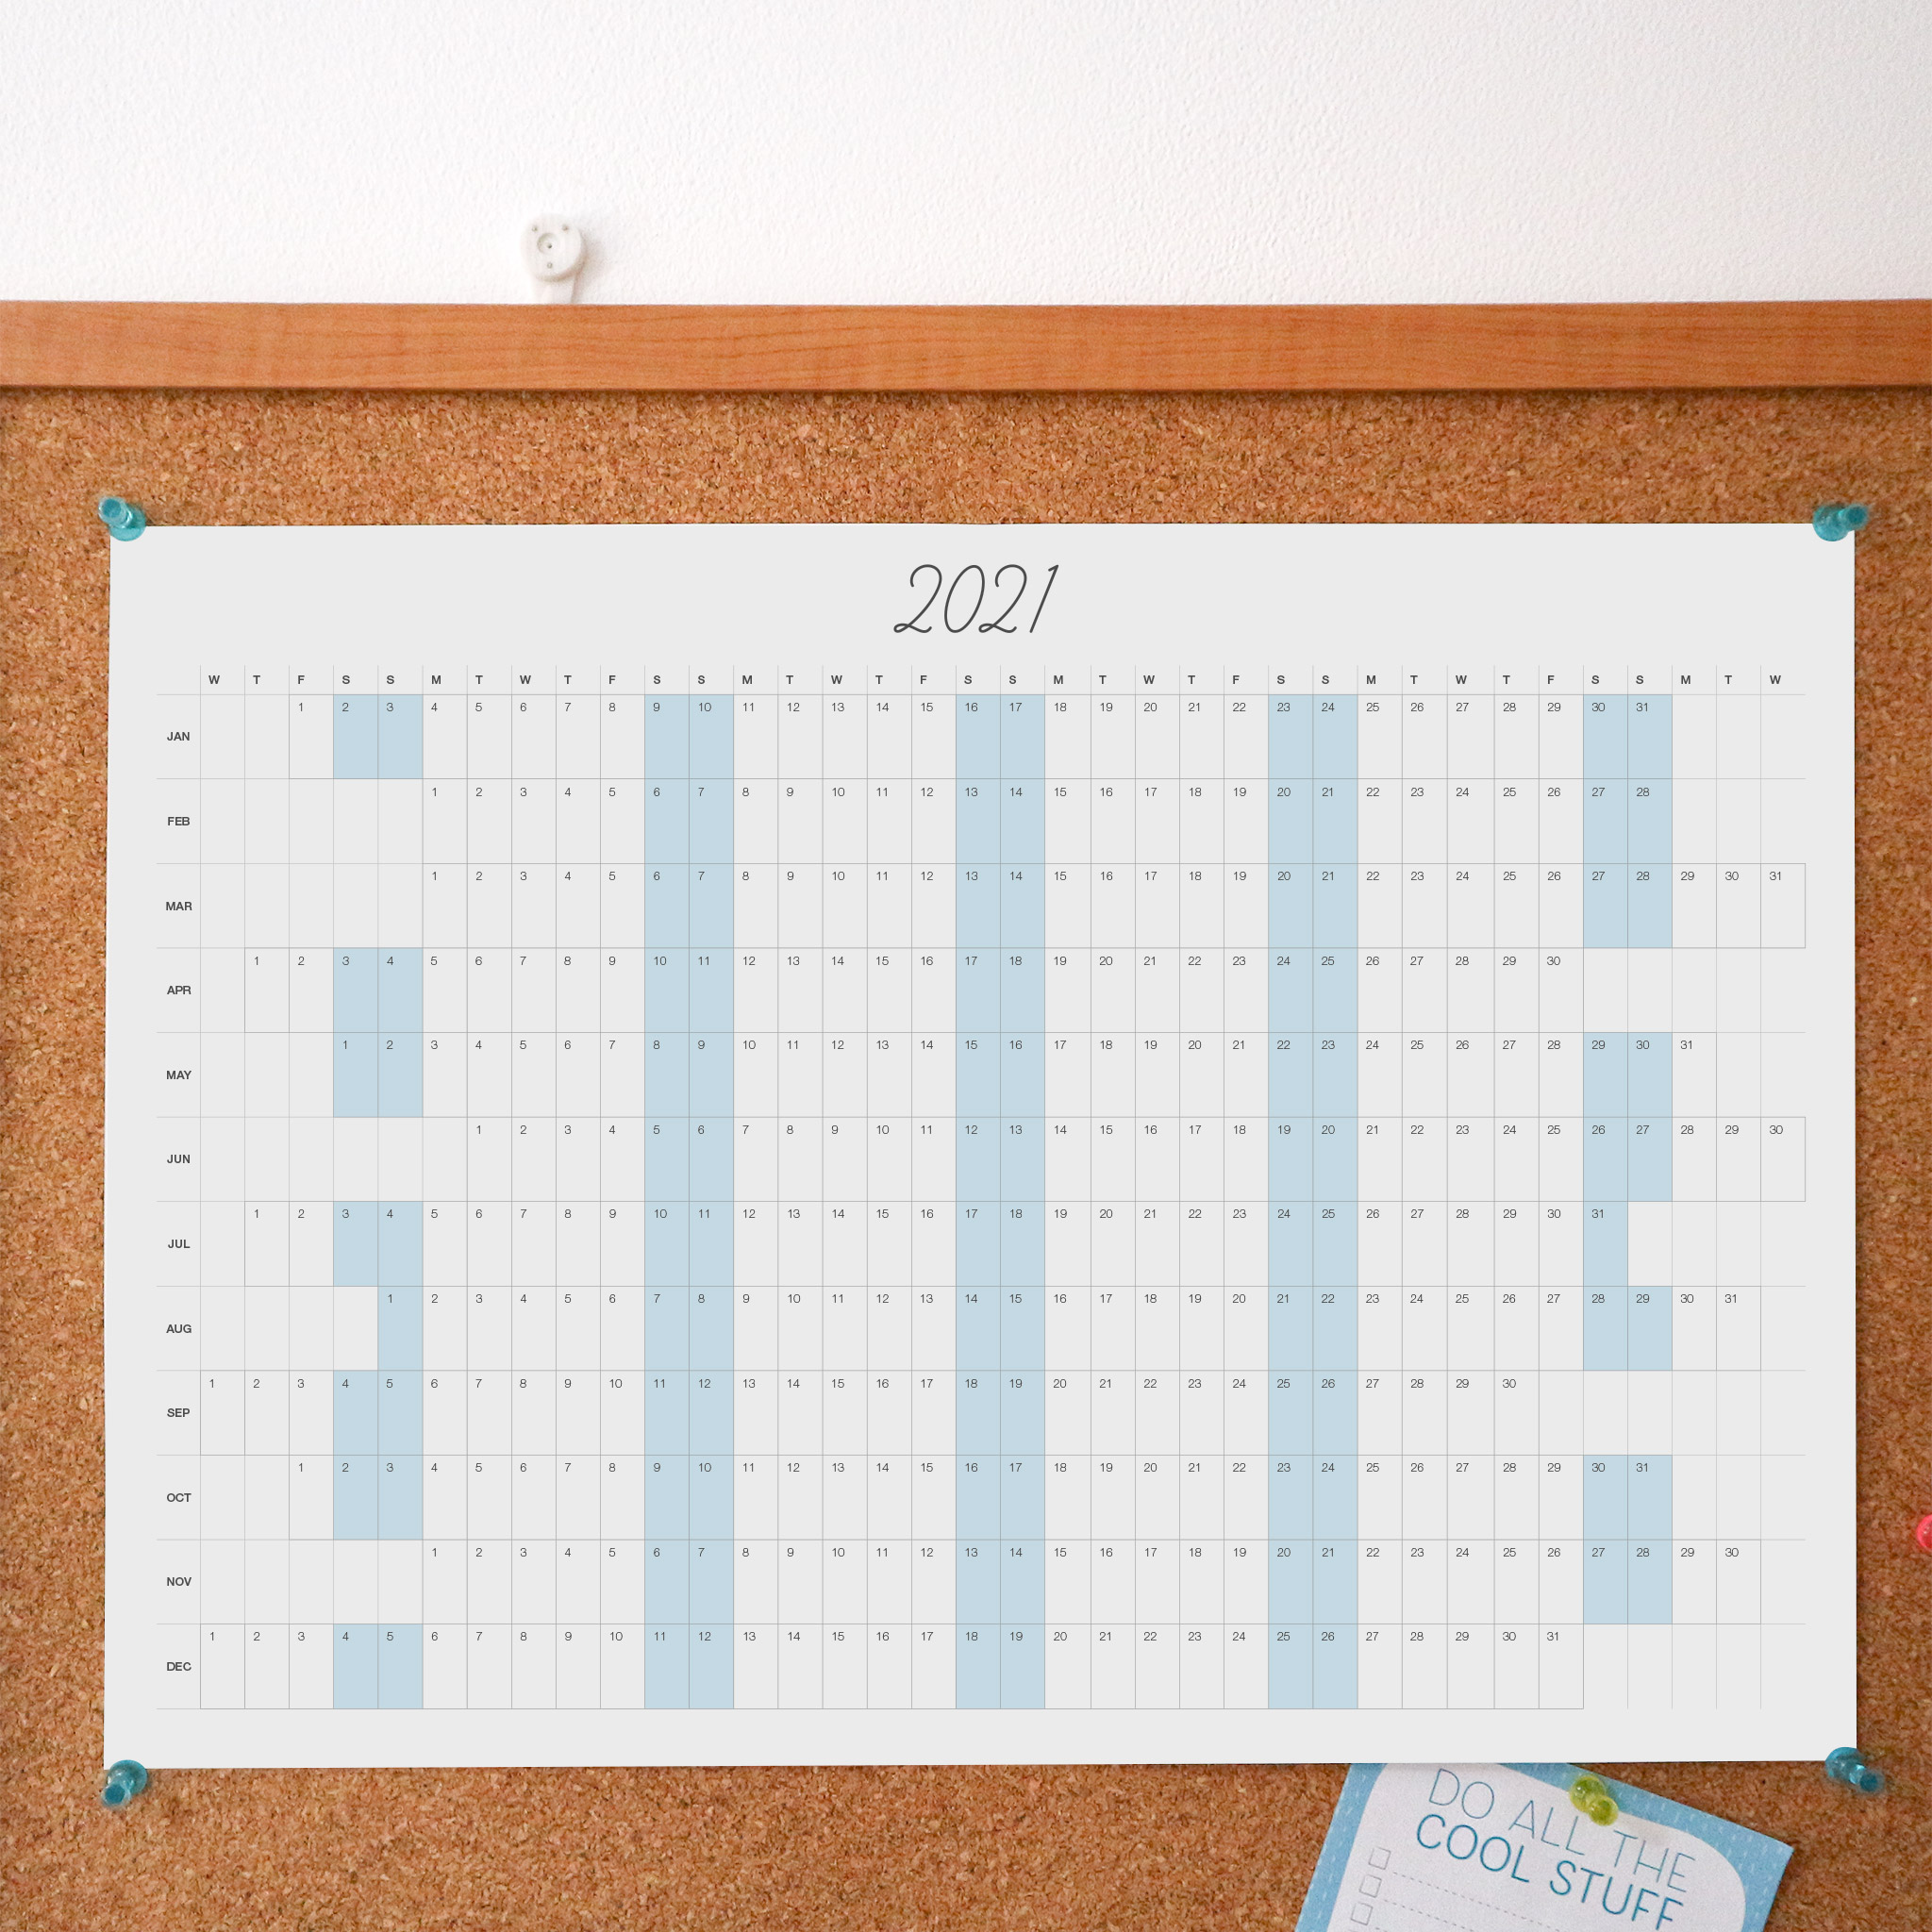 A minimal style A3 wall planner styled against a noticeboard. The planner is for the year 2021.